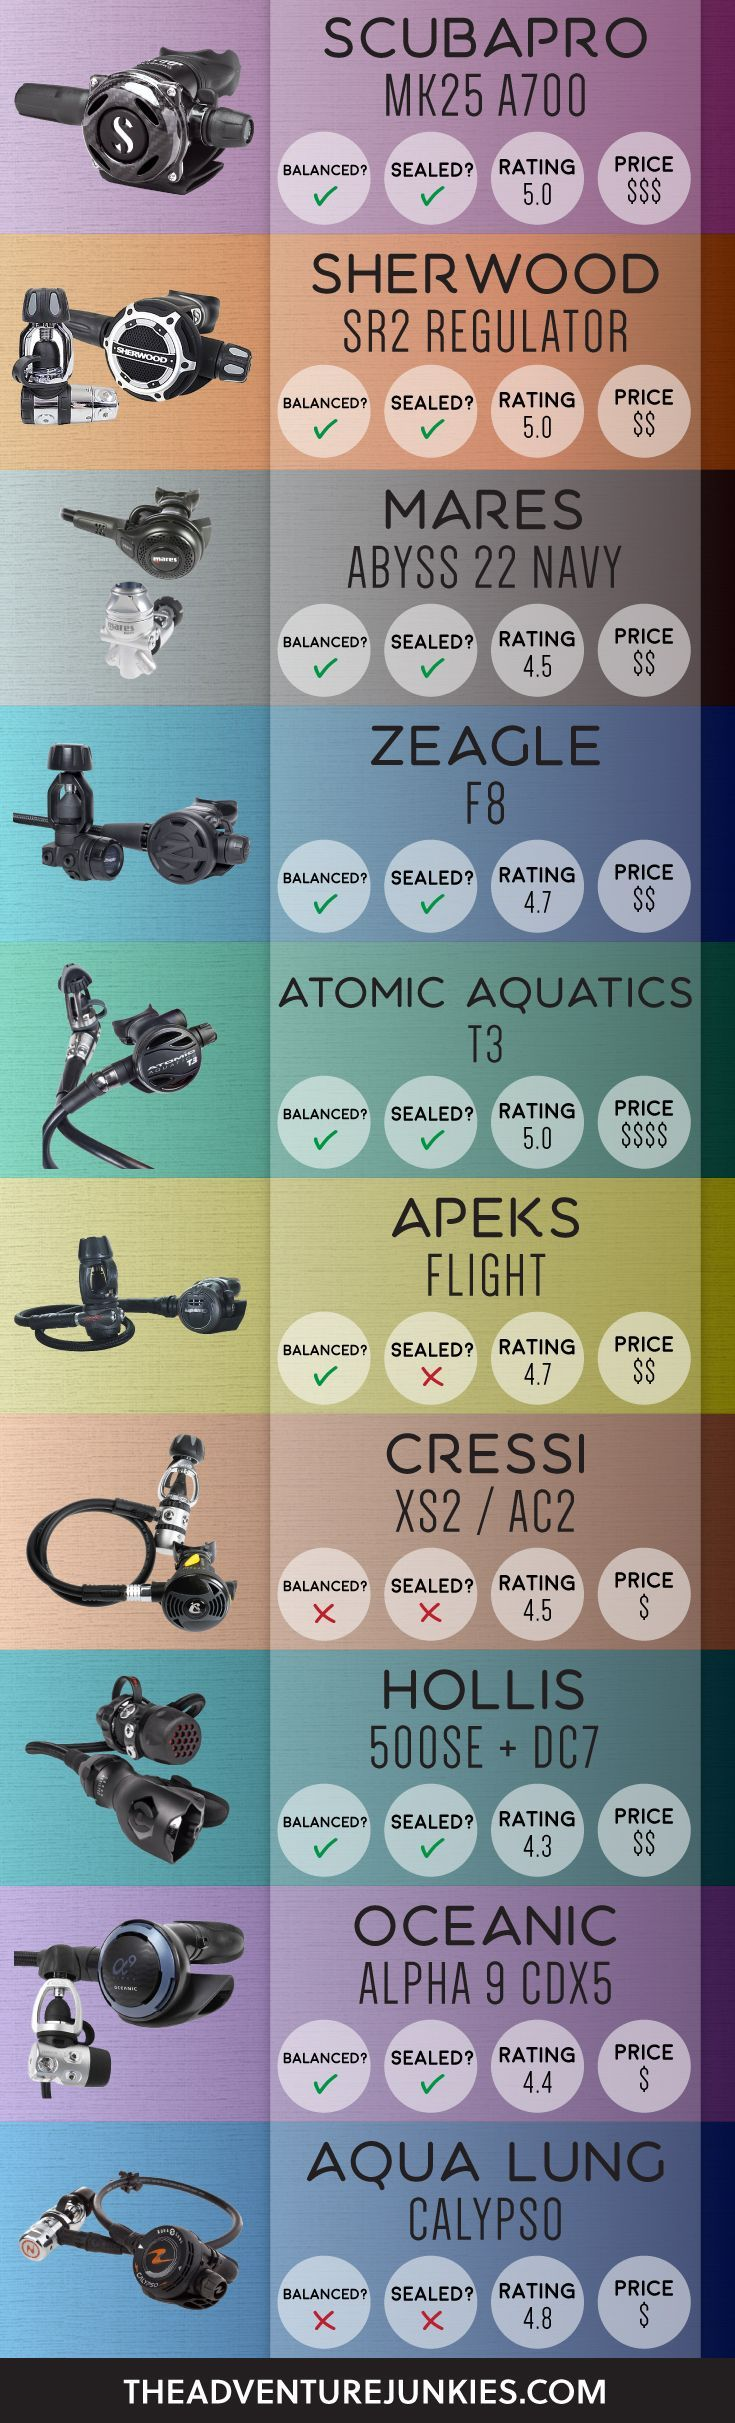 The Best Scuba Diving Regulators – Best Dive Gear - Scuba Diving Gear and Equipment Posts – Dive Products and Accessories